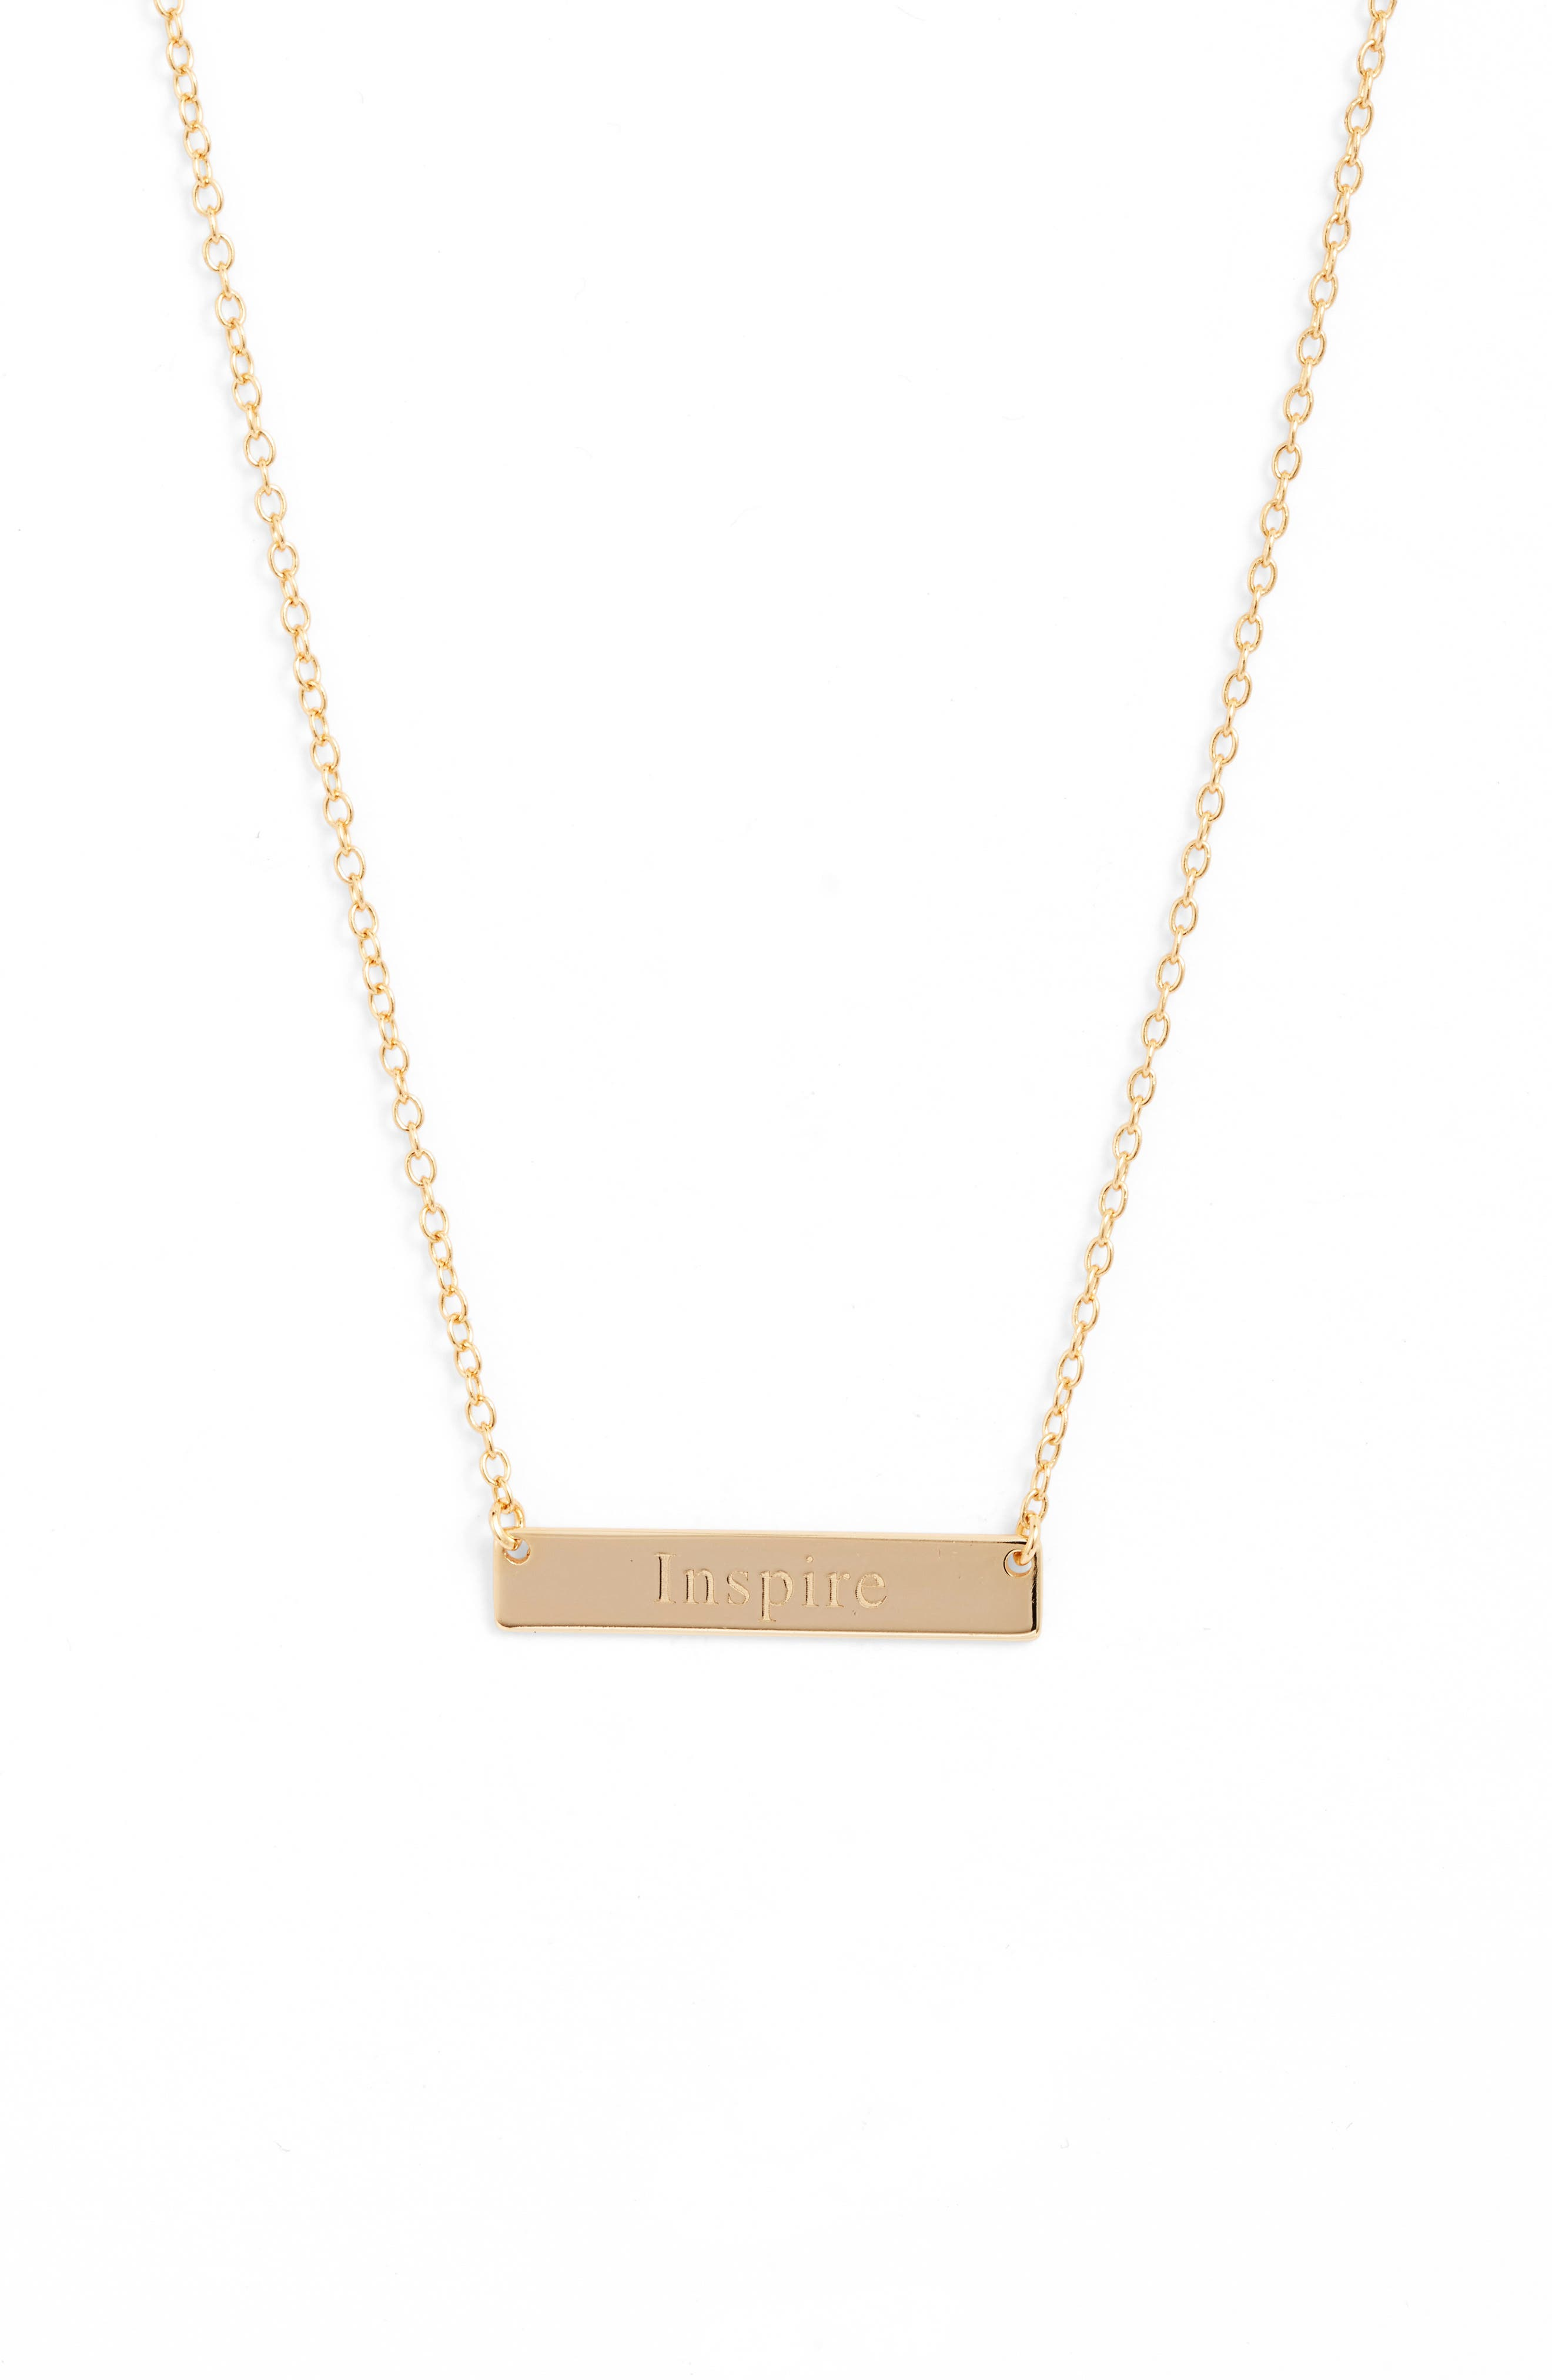 A simple design featuring a gleaming bar pendant embossed with an inspiring message defines this understated necklace. Style Name: Sterling Forever Inspire Bar Pendant Necklace. Style Number: 5904771. Available in stores.